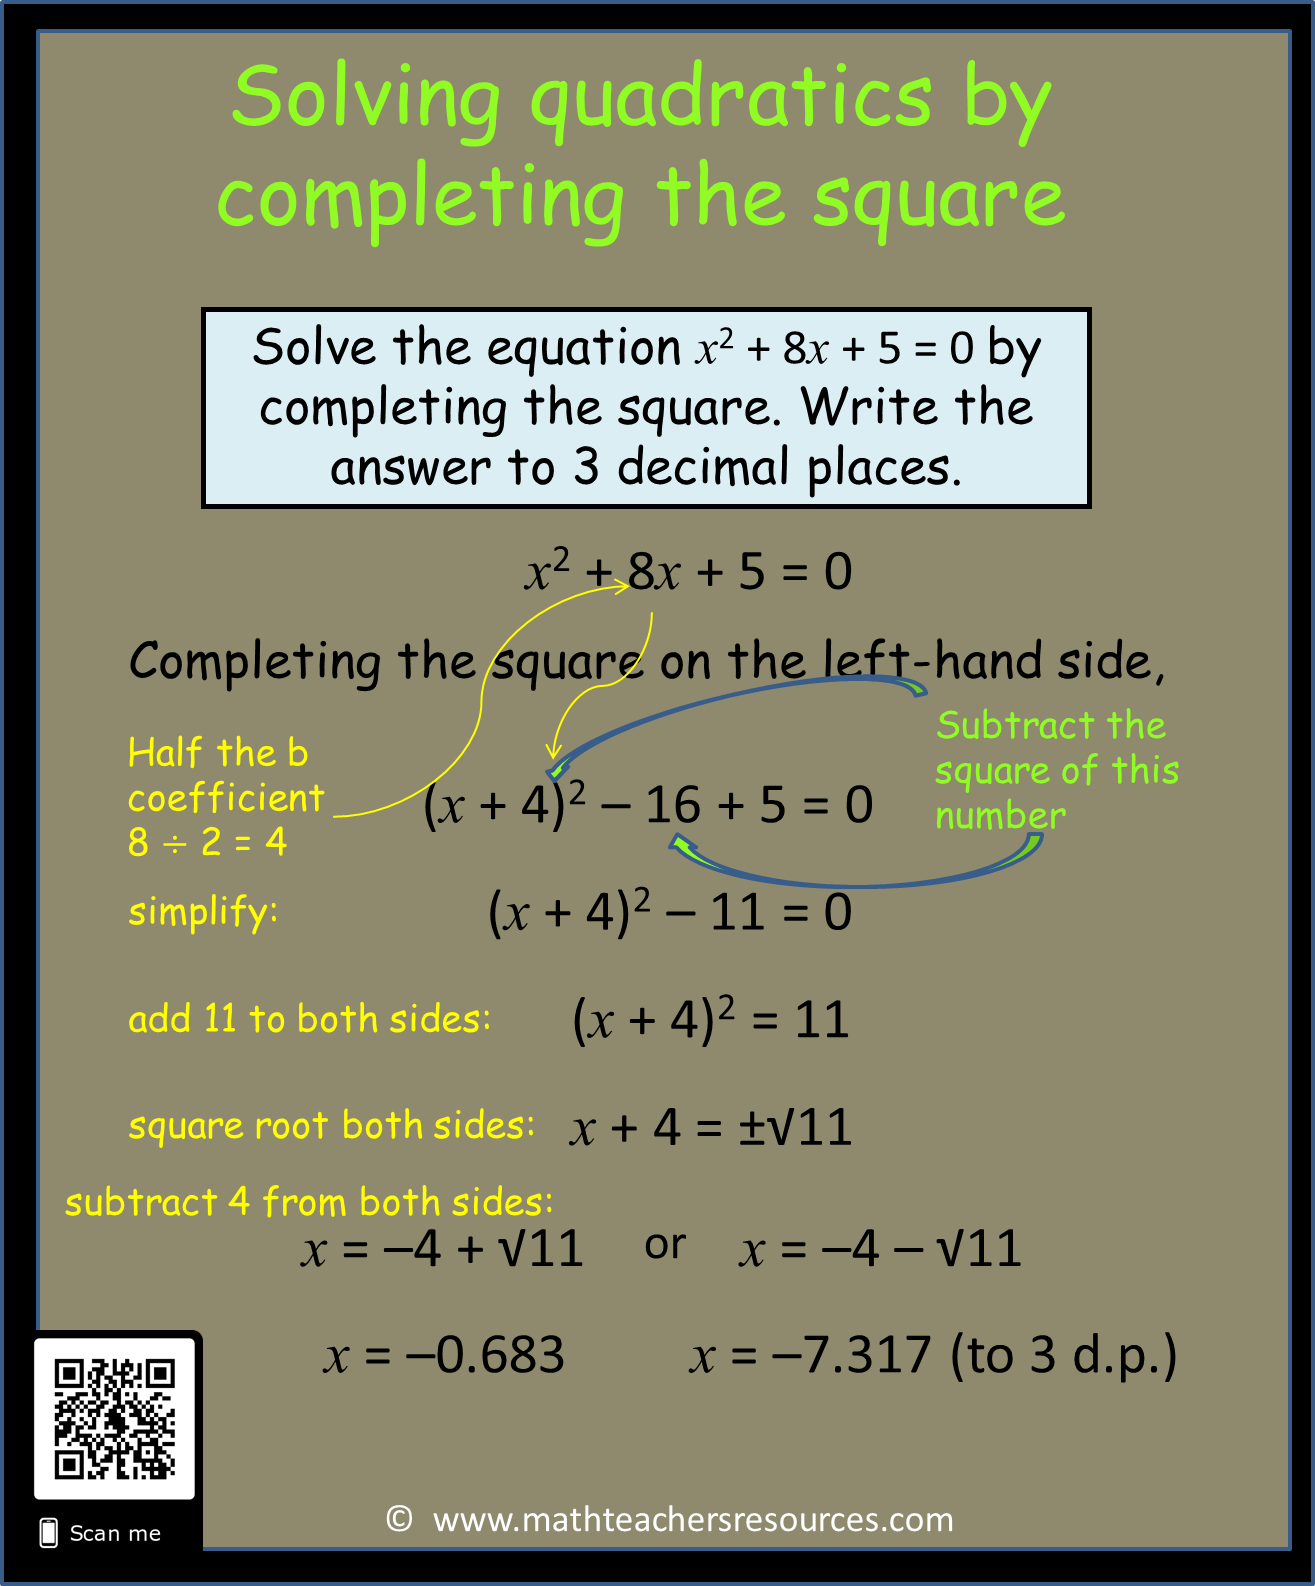 How to solve quadratic equations by completing the square   Math  Infographic   Solving quadratic equations [ 1586 x 1315 Pixel ]